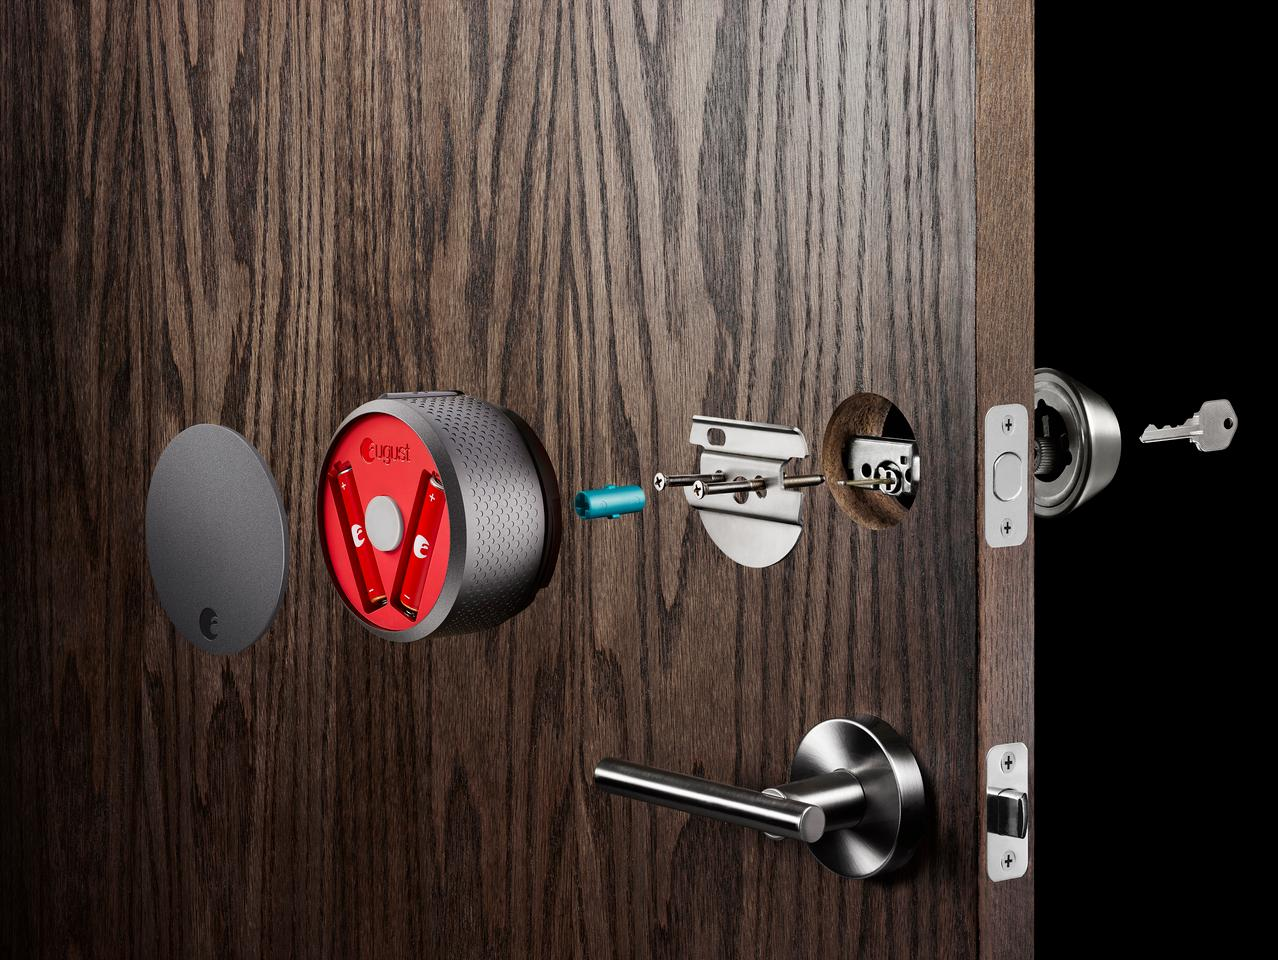 August's series of smart locks are attached to the inside of standard deadbolt doors, leaving the outside lock unchanged